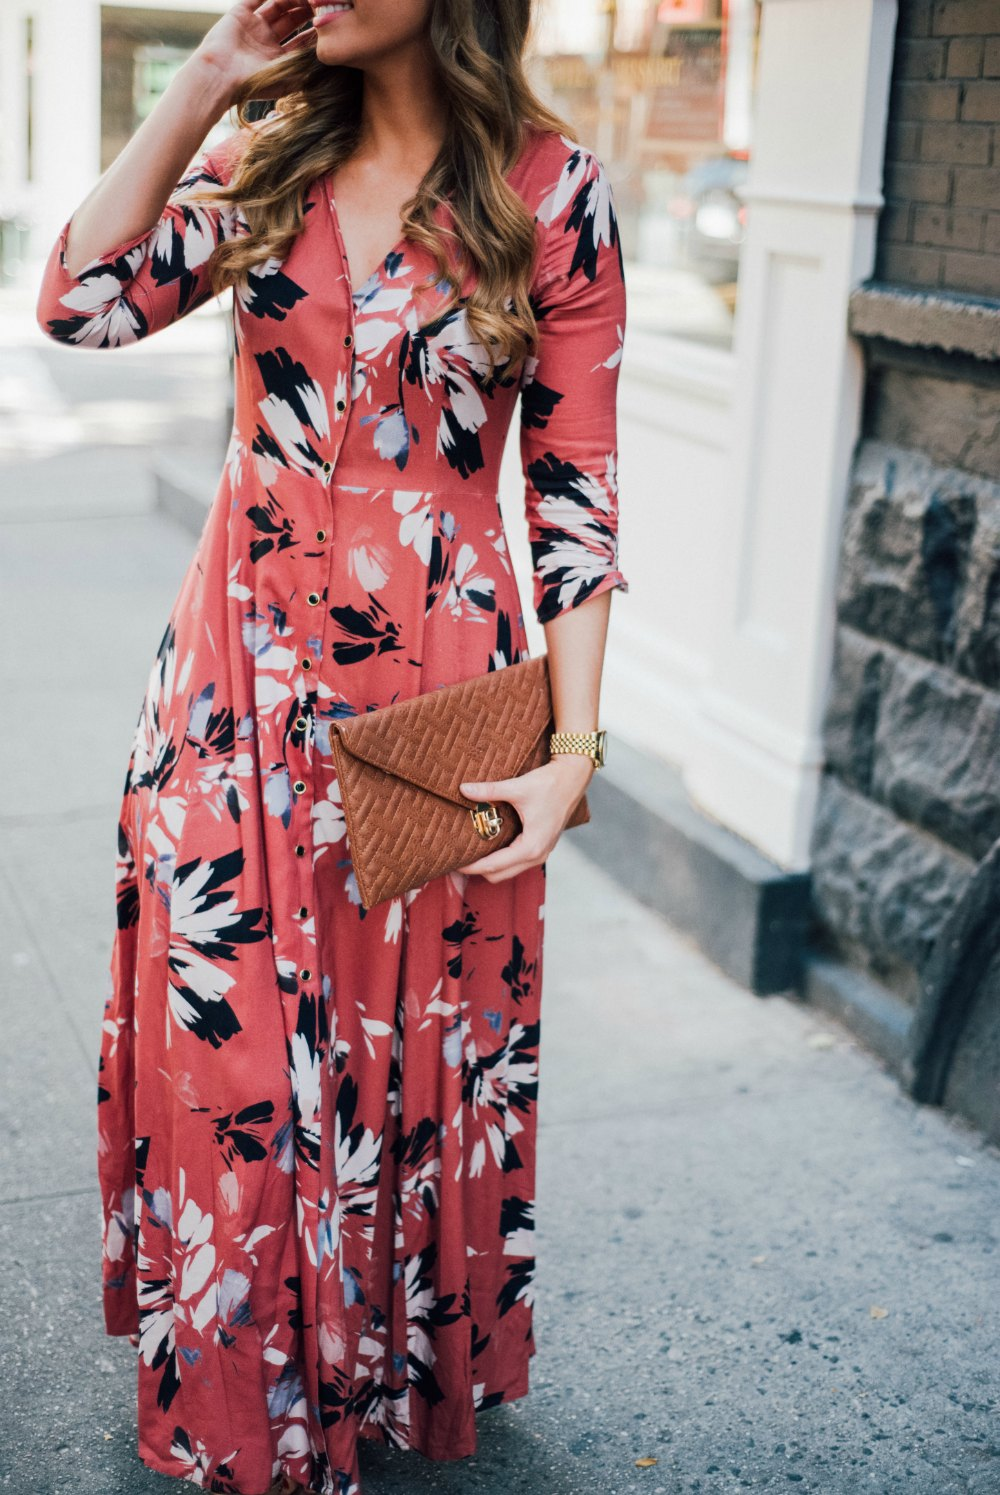 yumi kim maxi dress new york spring outfit soho lauren slade style elixir fashion blog 5